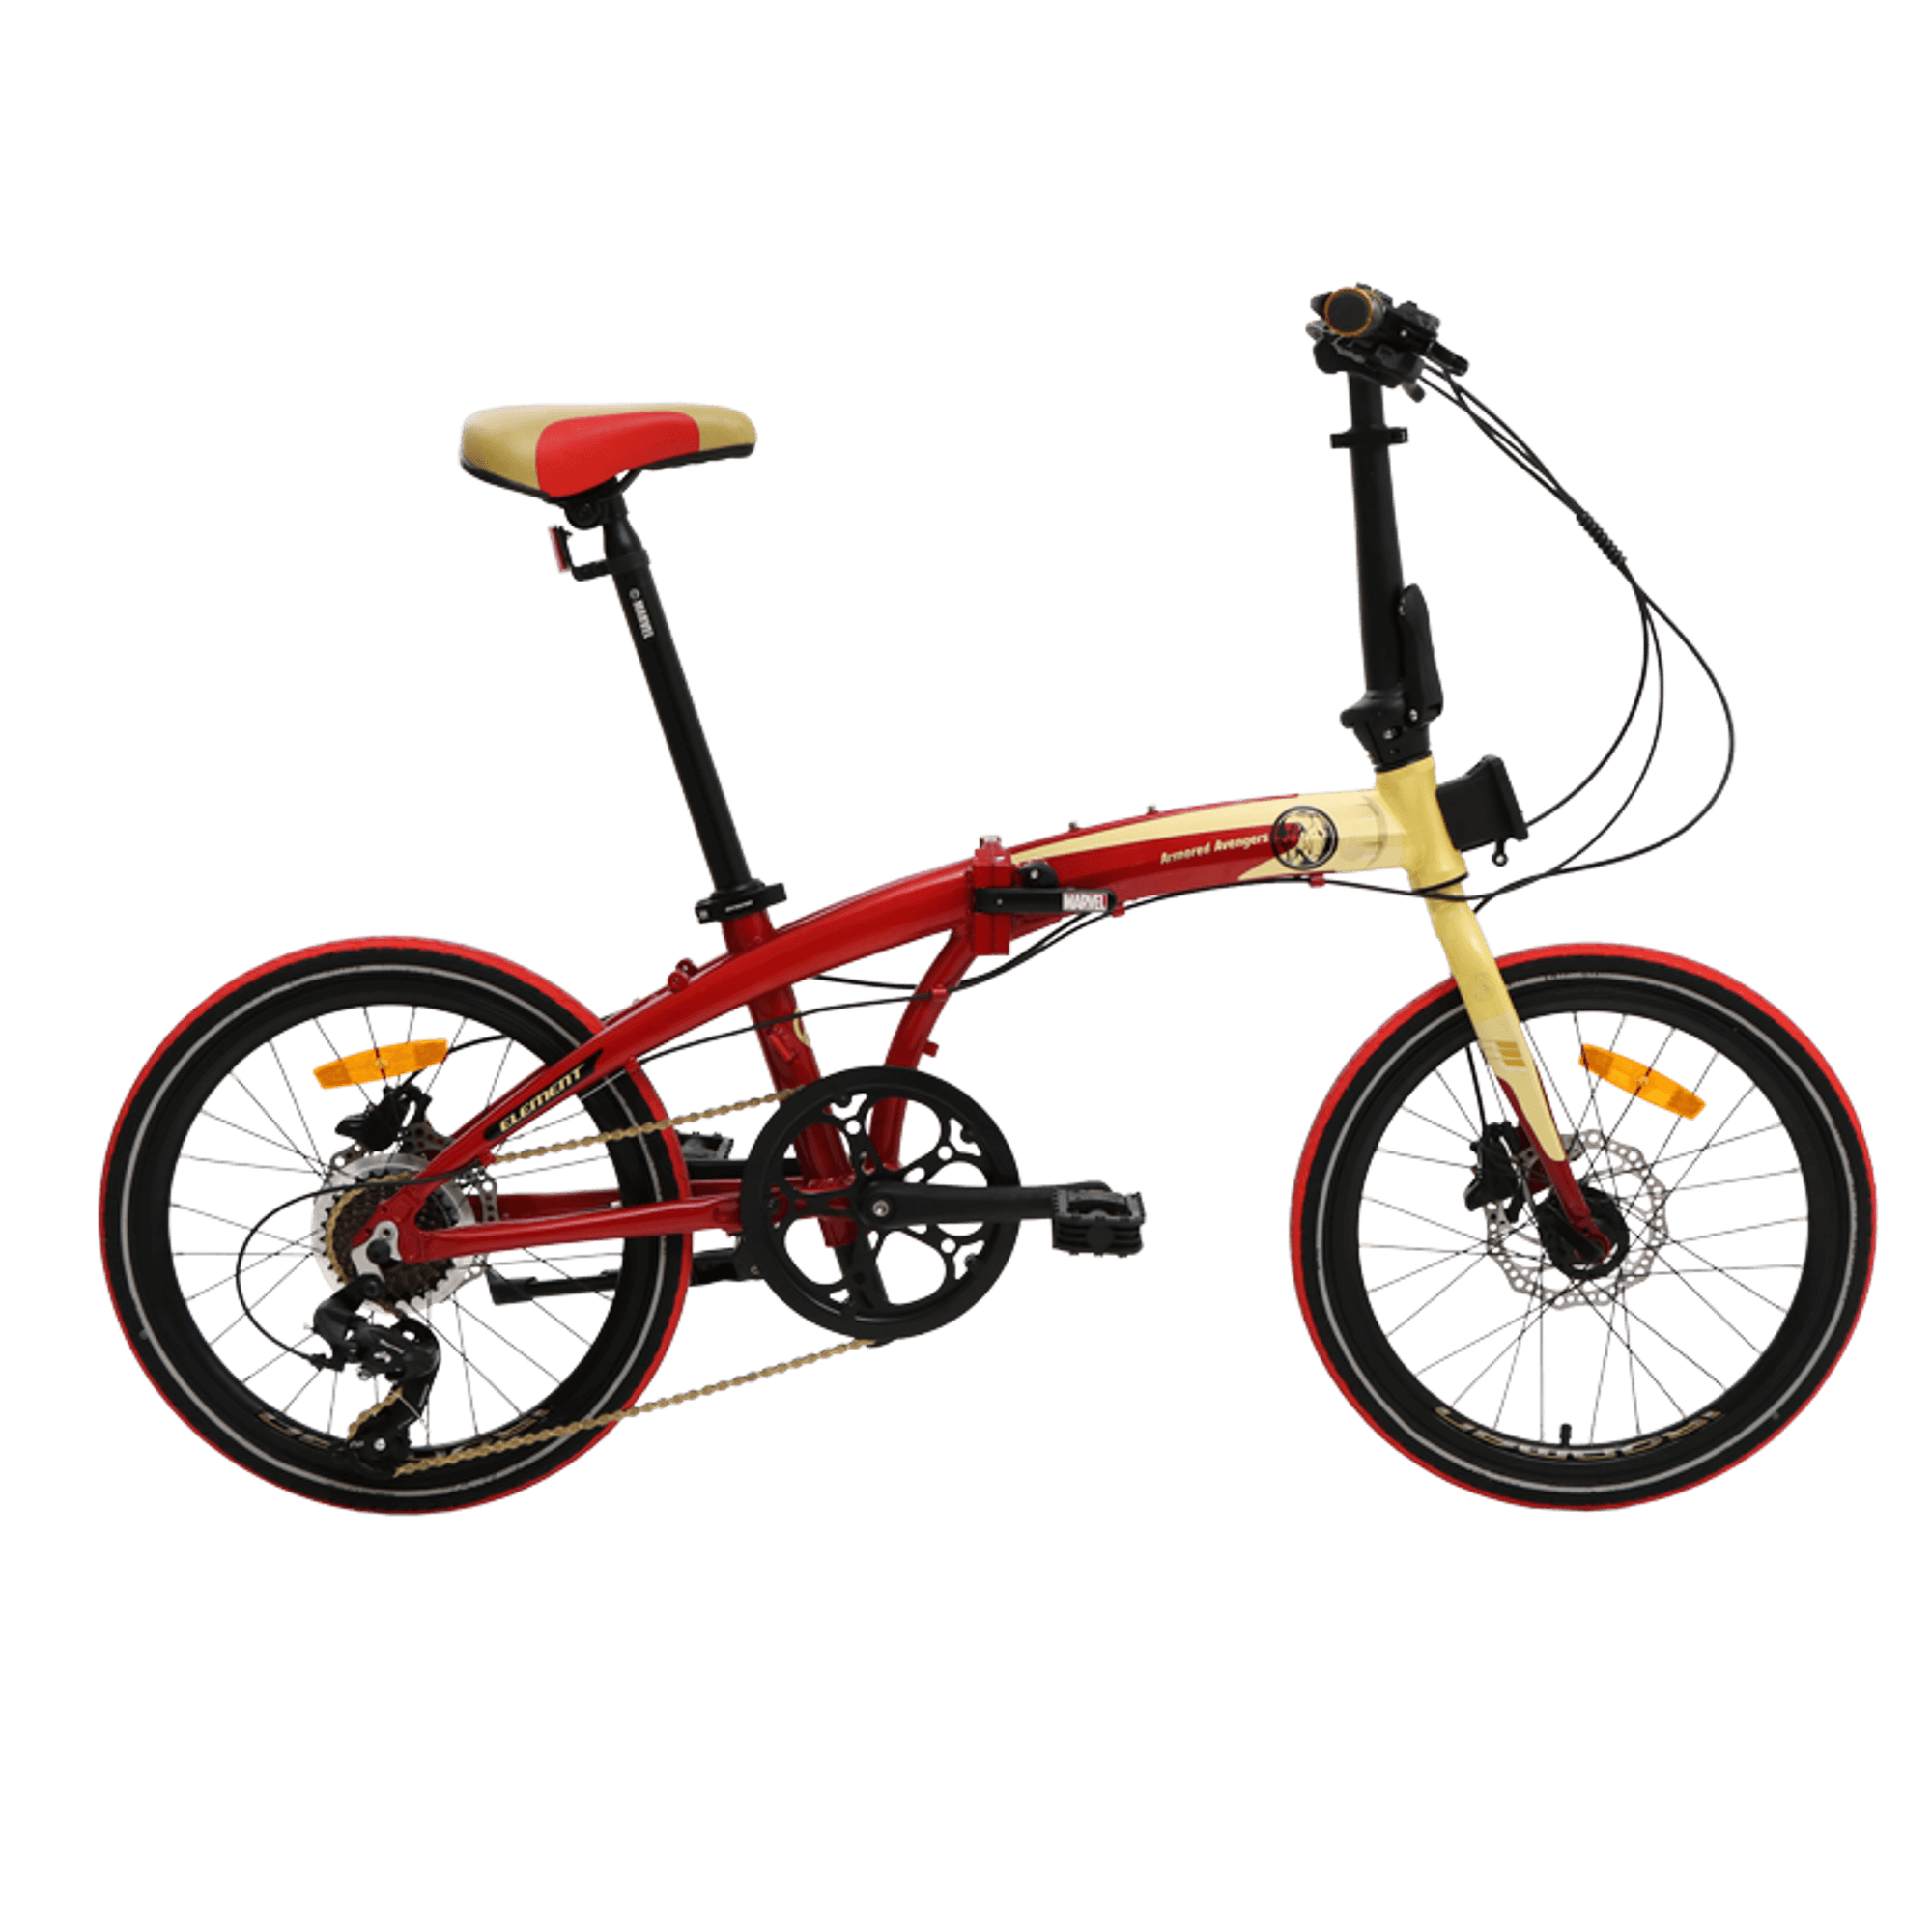 Element Folding Bike Ecosmo Iron Man Edition